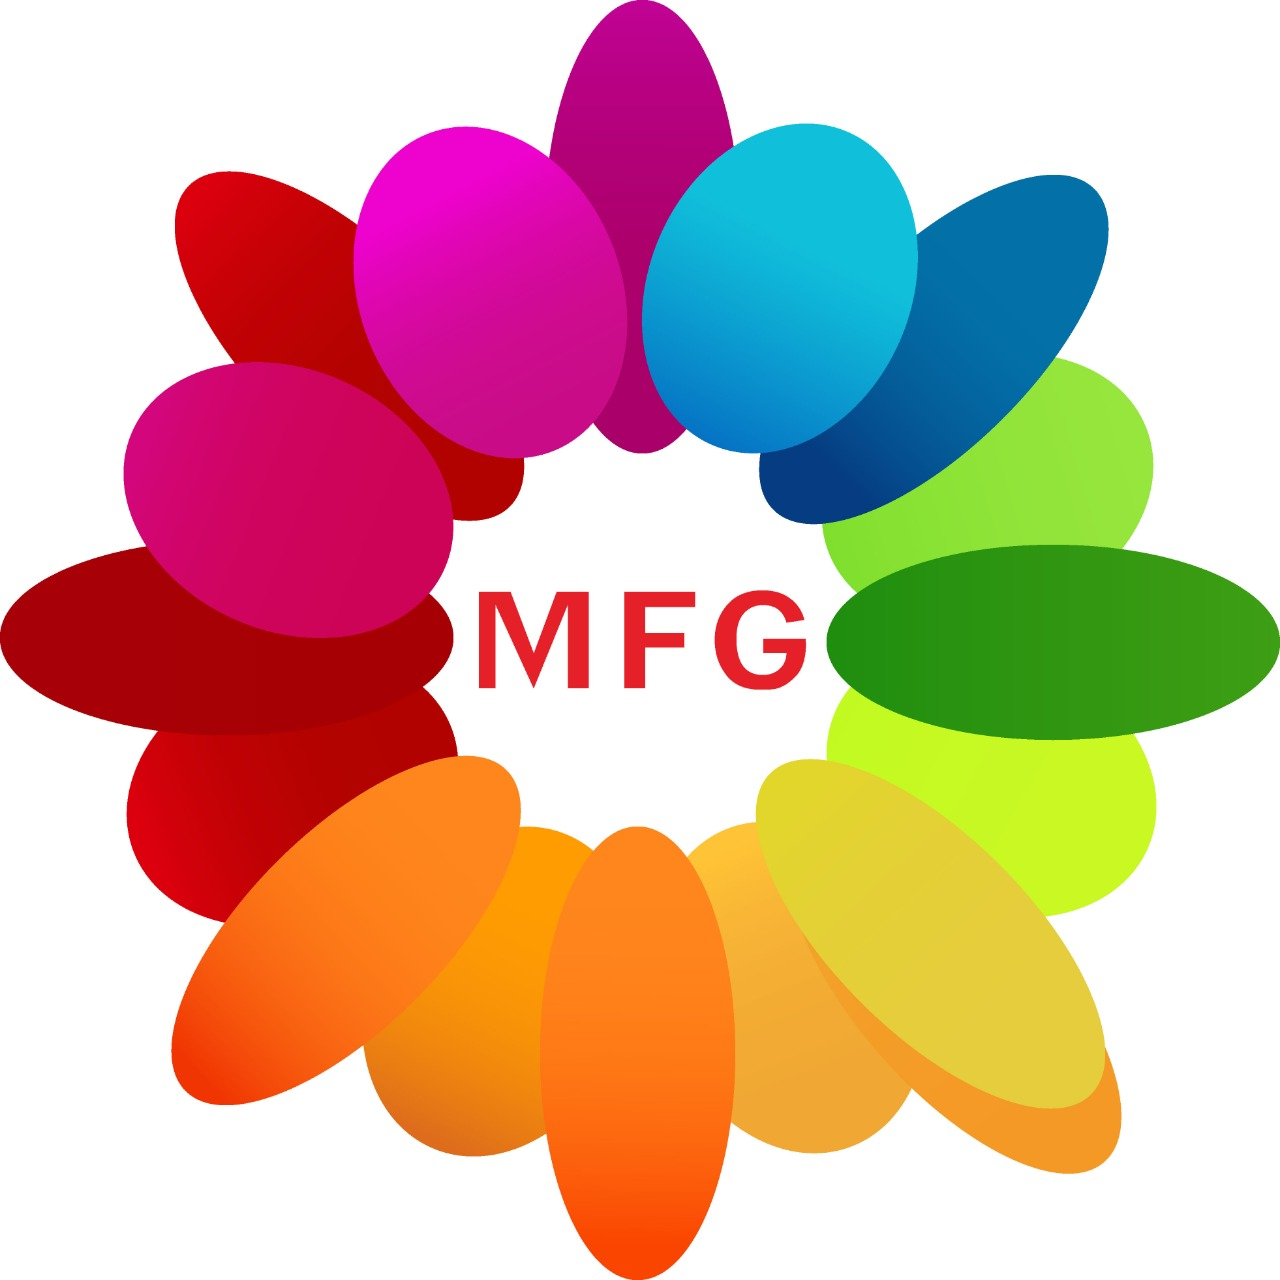 bunch of white lilies with red carnations